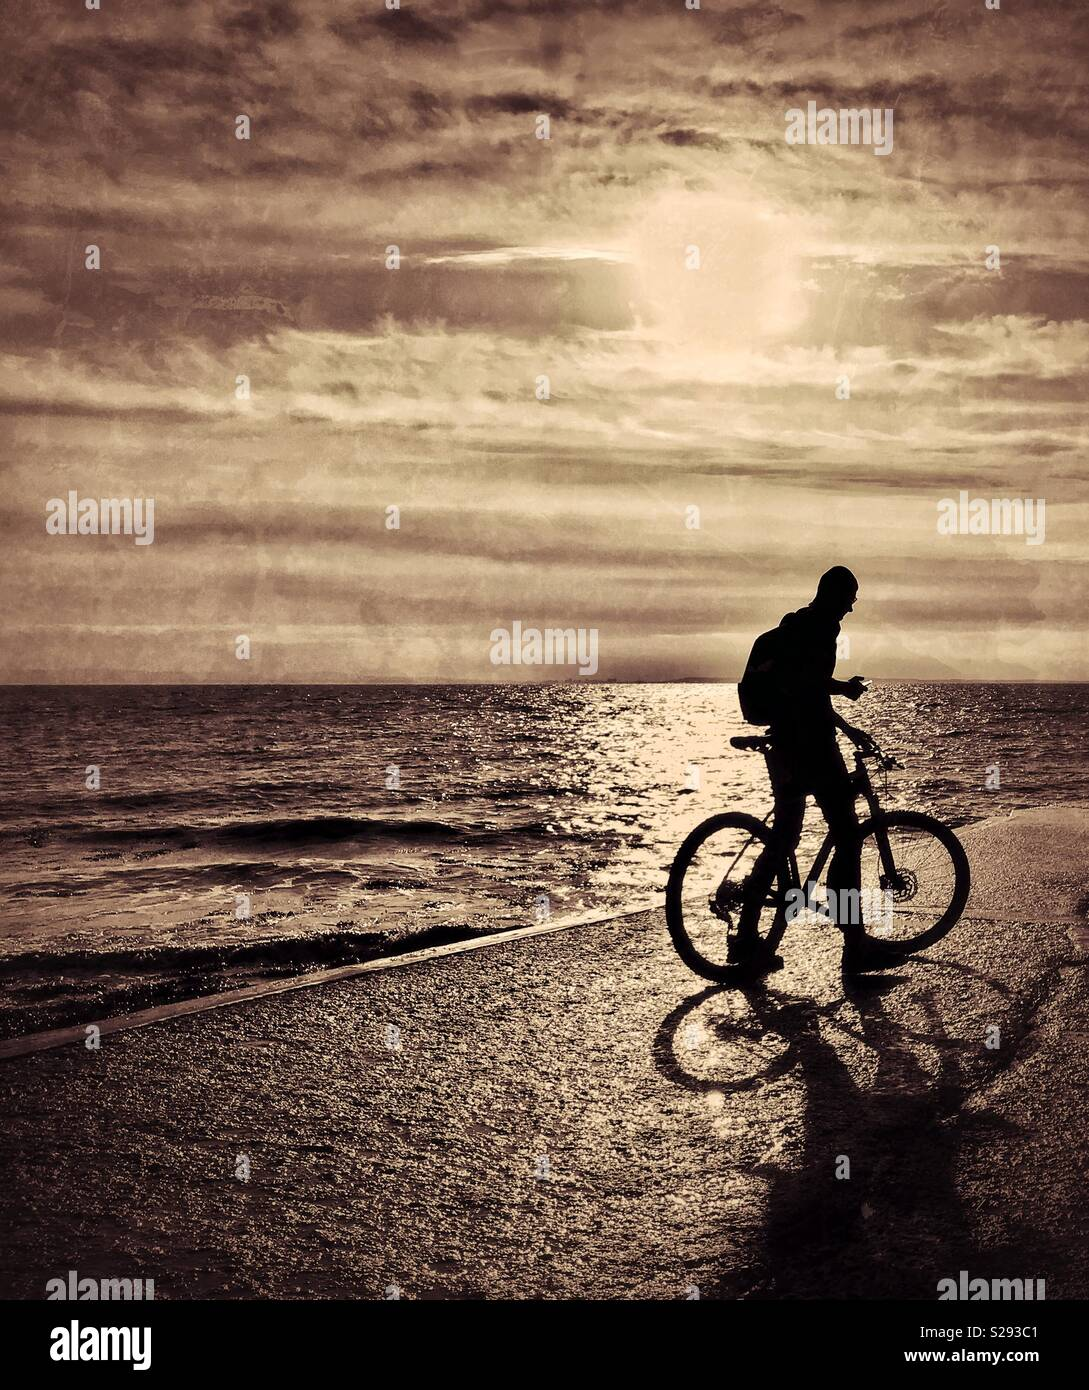 A lone cyclist checks his hand held electronic device next to the waters edge at sunset. An atmospheric image with multiple potential uses. Photo Credit - © COLIN HOSKINS. - Stock Image